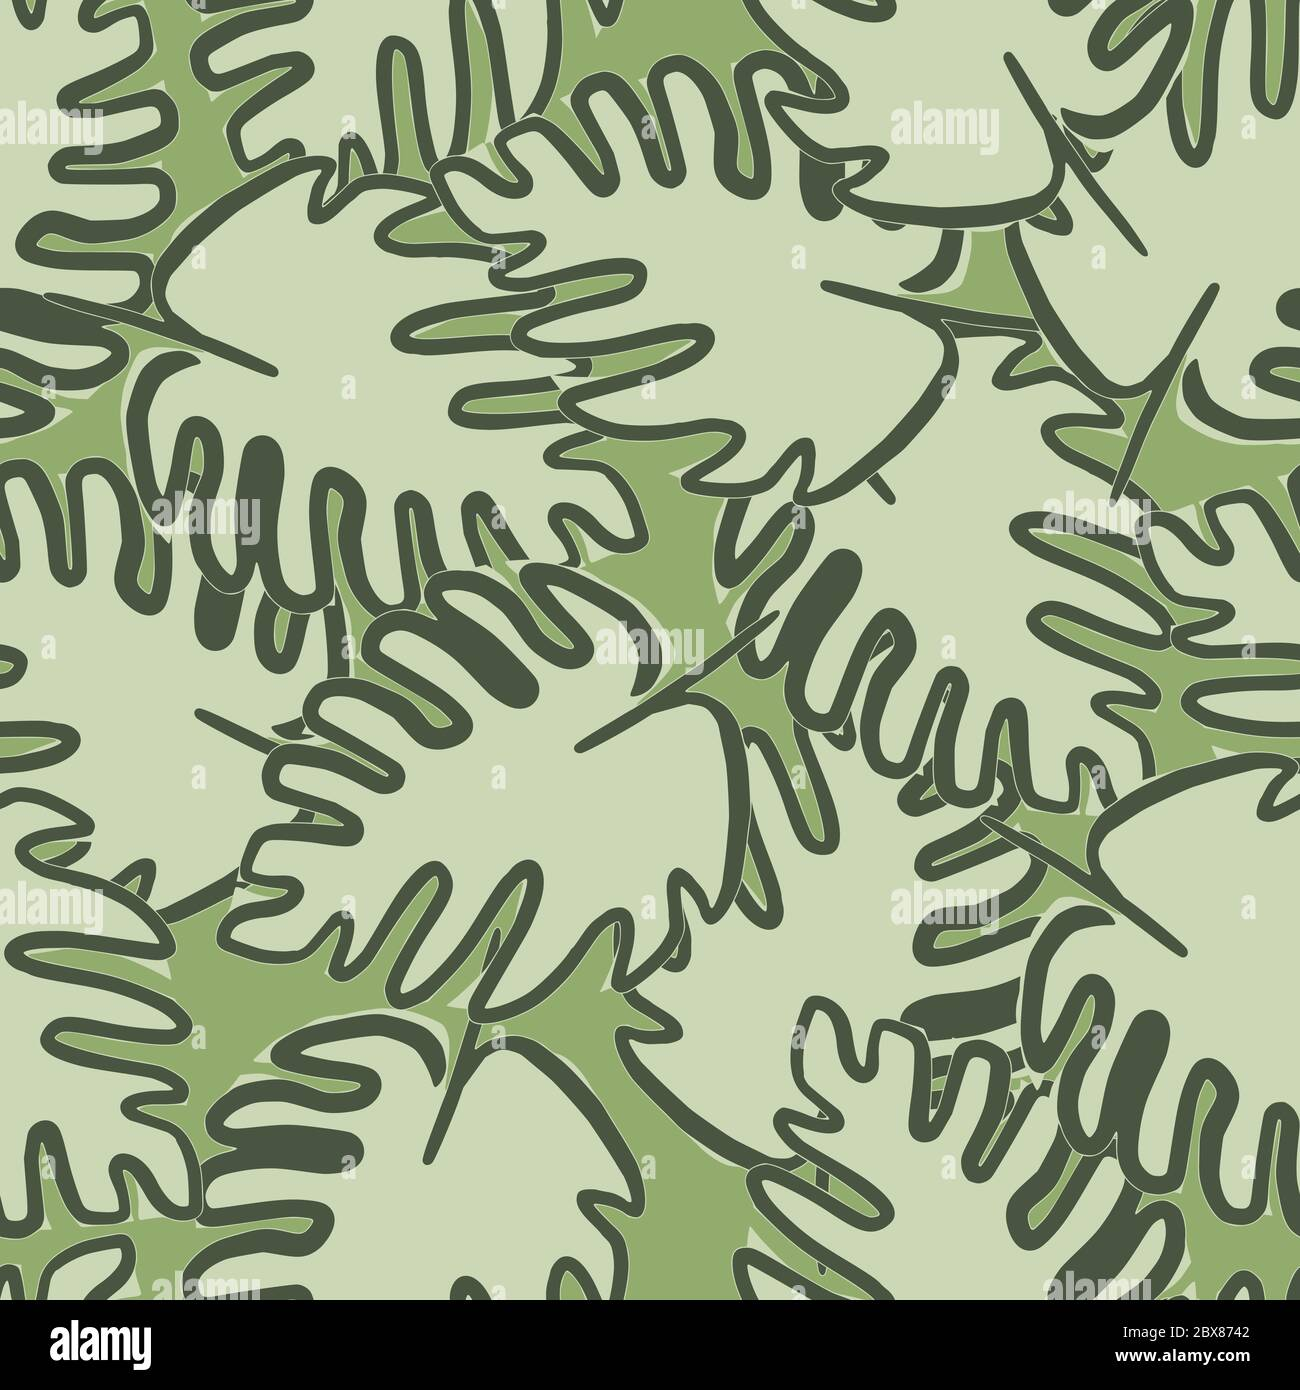 Outline Monstera Leaf Seamless Pattern On Green Background Tropical Leaves Vector Illustration Exotic Jungle Wallpaper Design For Fabric Textile P Stock Vector Image Art Alamy Can anyone help me out with this? alamy